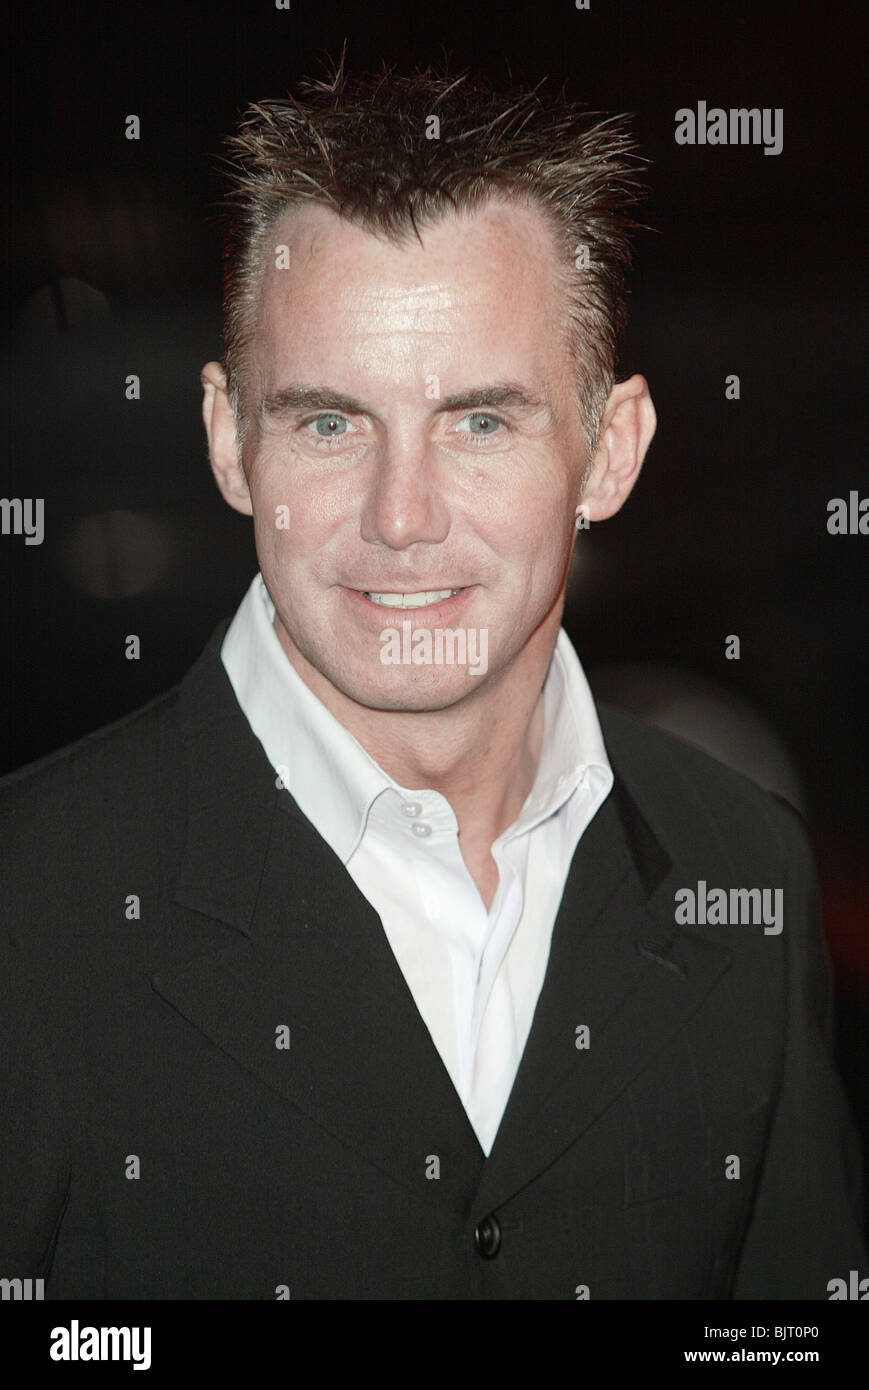 GARY RHODES TV MOMENTS AWARDS 2003 BBC CENTRE LONDON ENGLAND 31 January 2004 - Stock Image